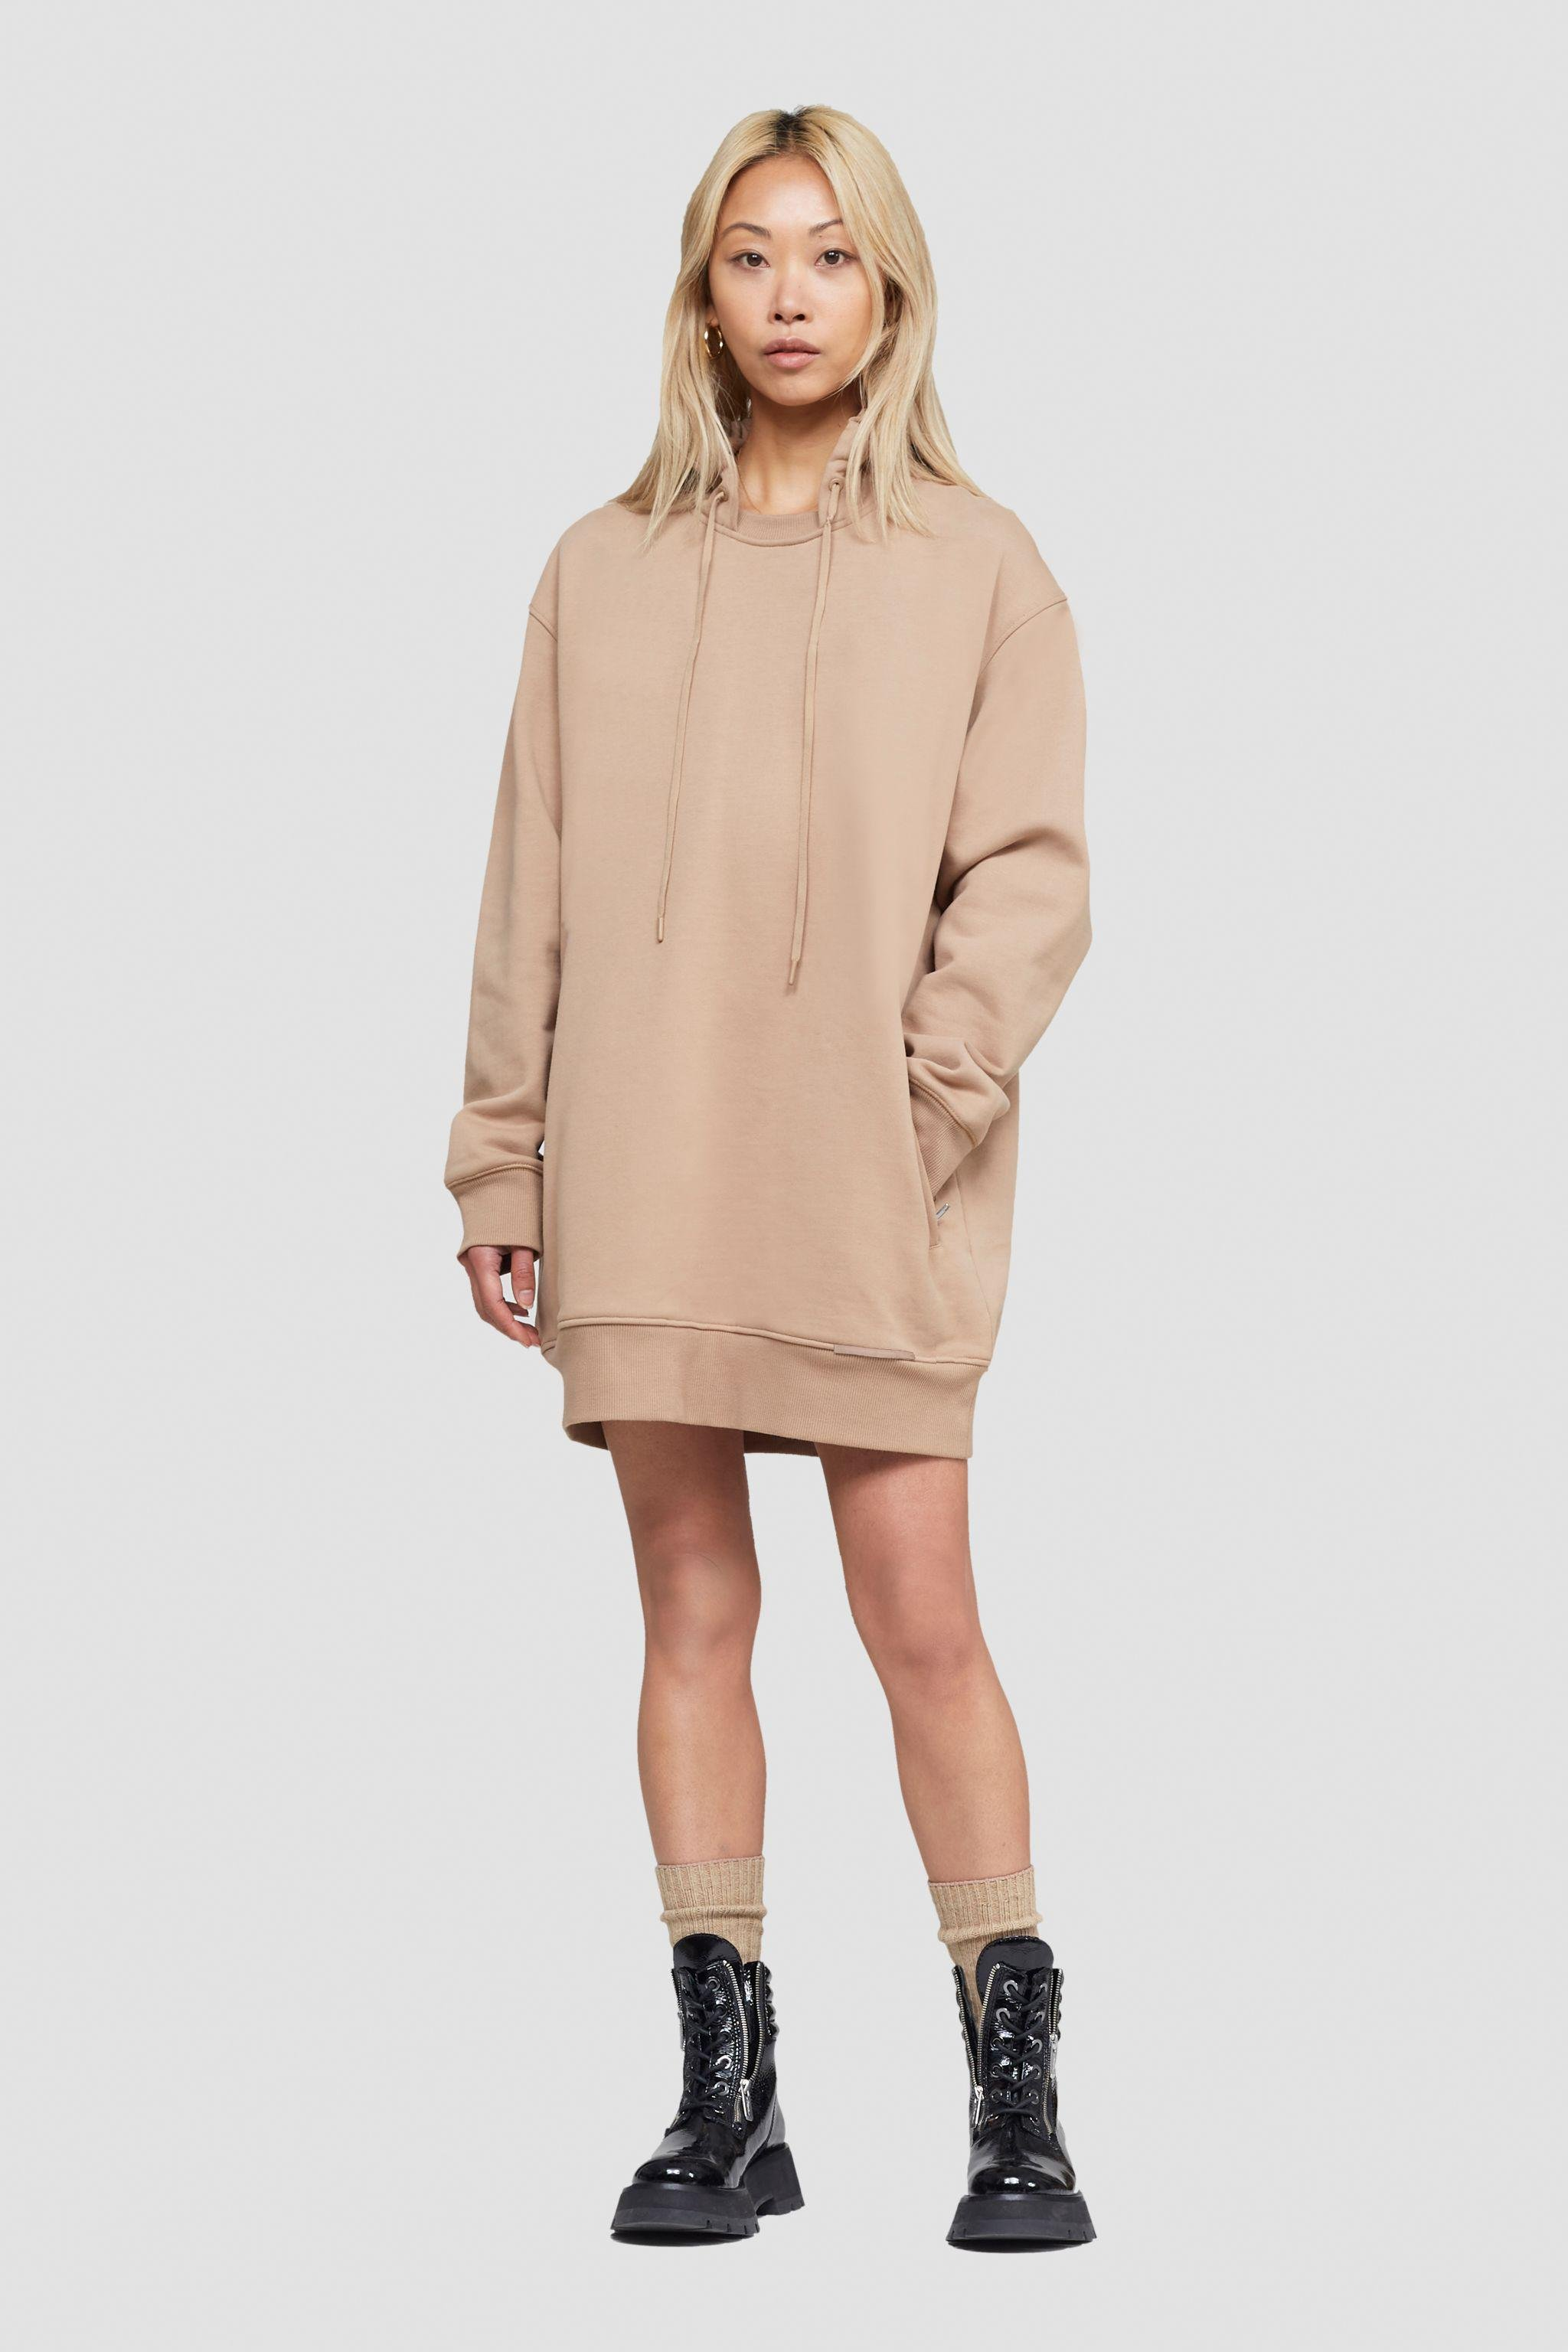 The Live-In Sweat Dress